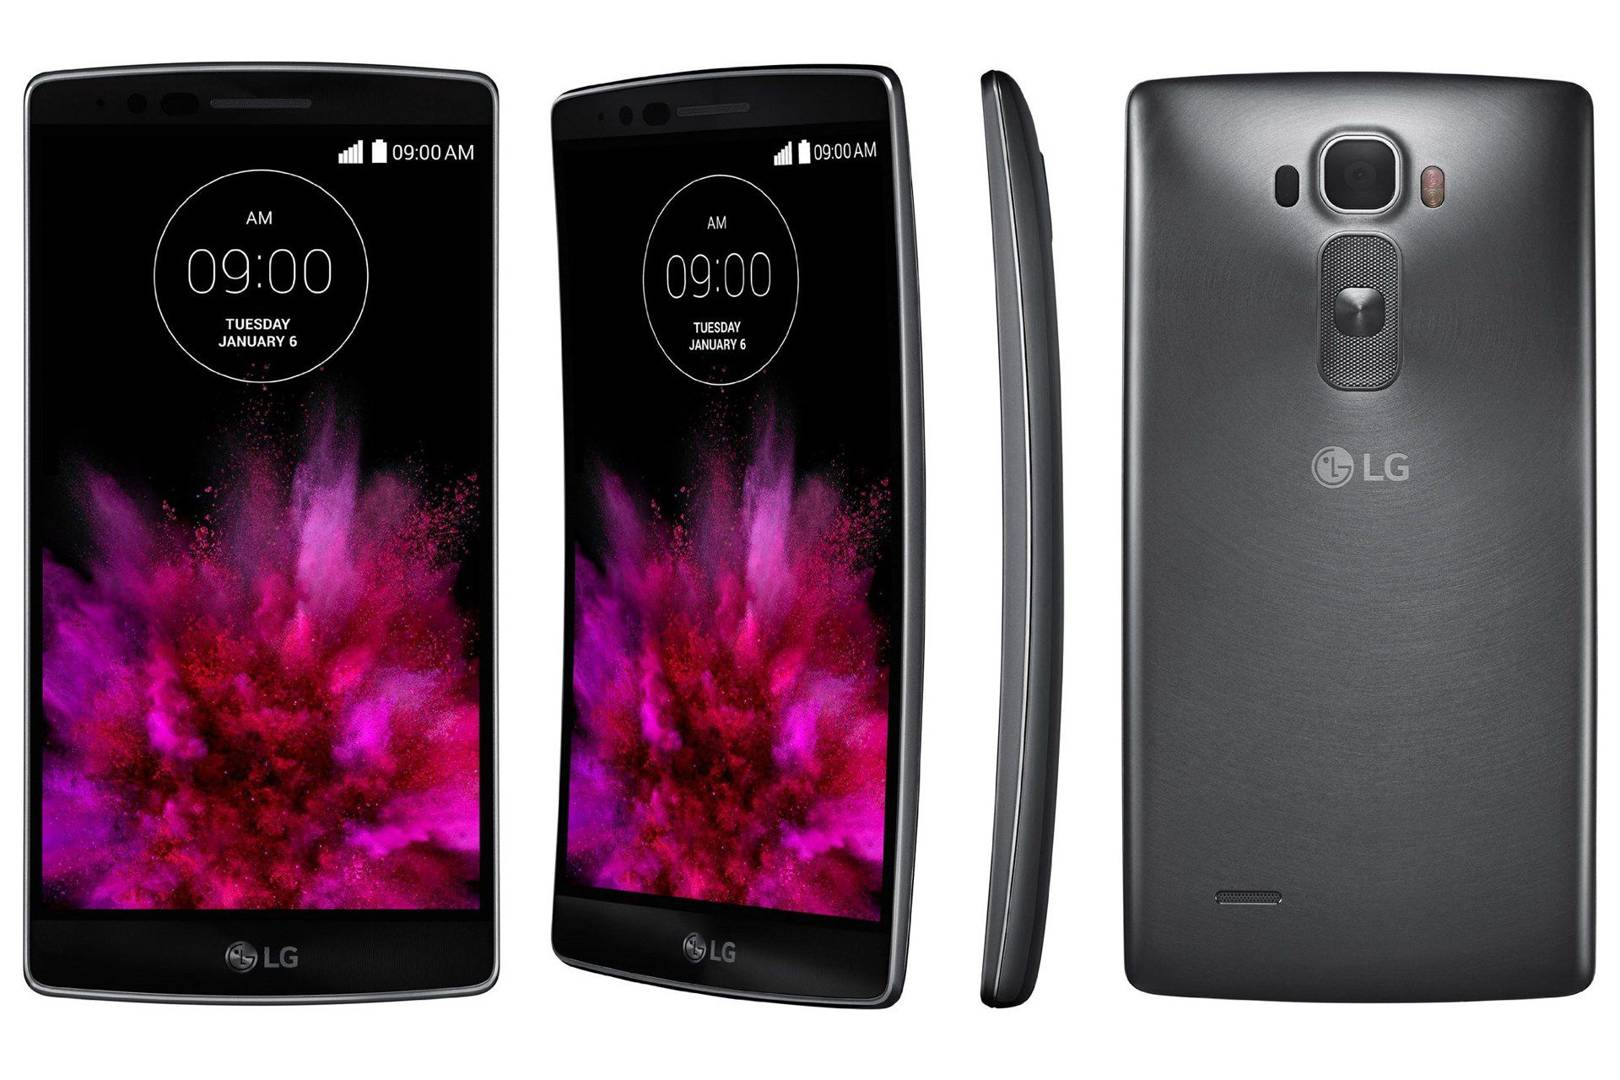 LG G Flex 2 review: specs, comparison and best price   WIRED UK